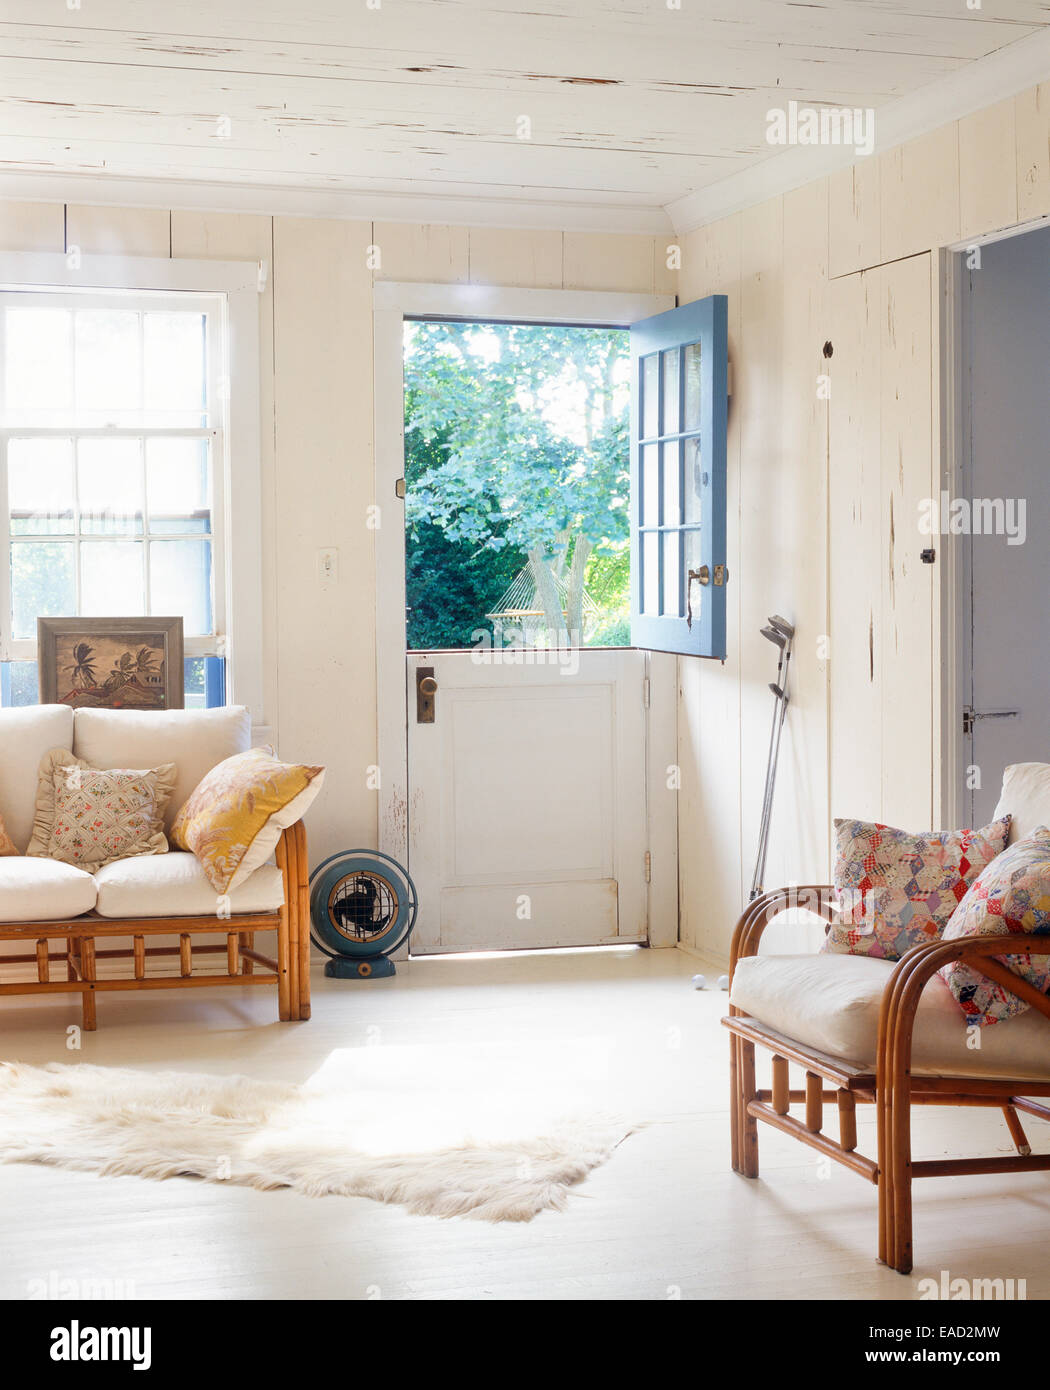 interior of country cottage with partitioned door - Stock Image